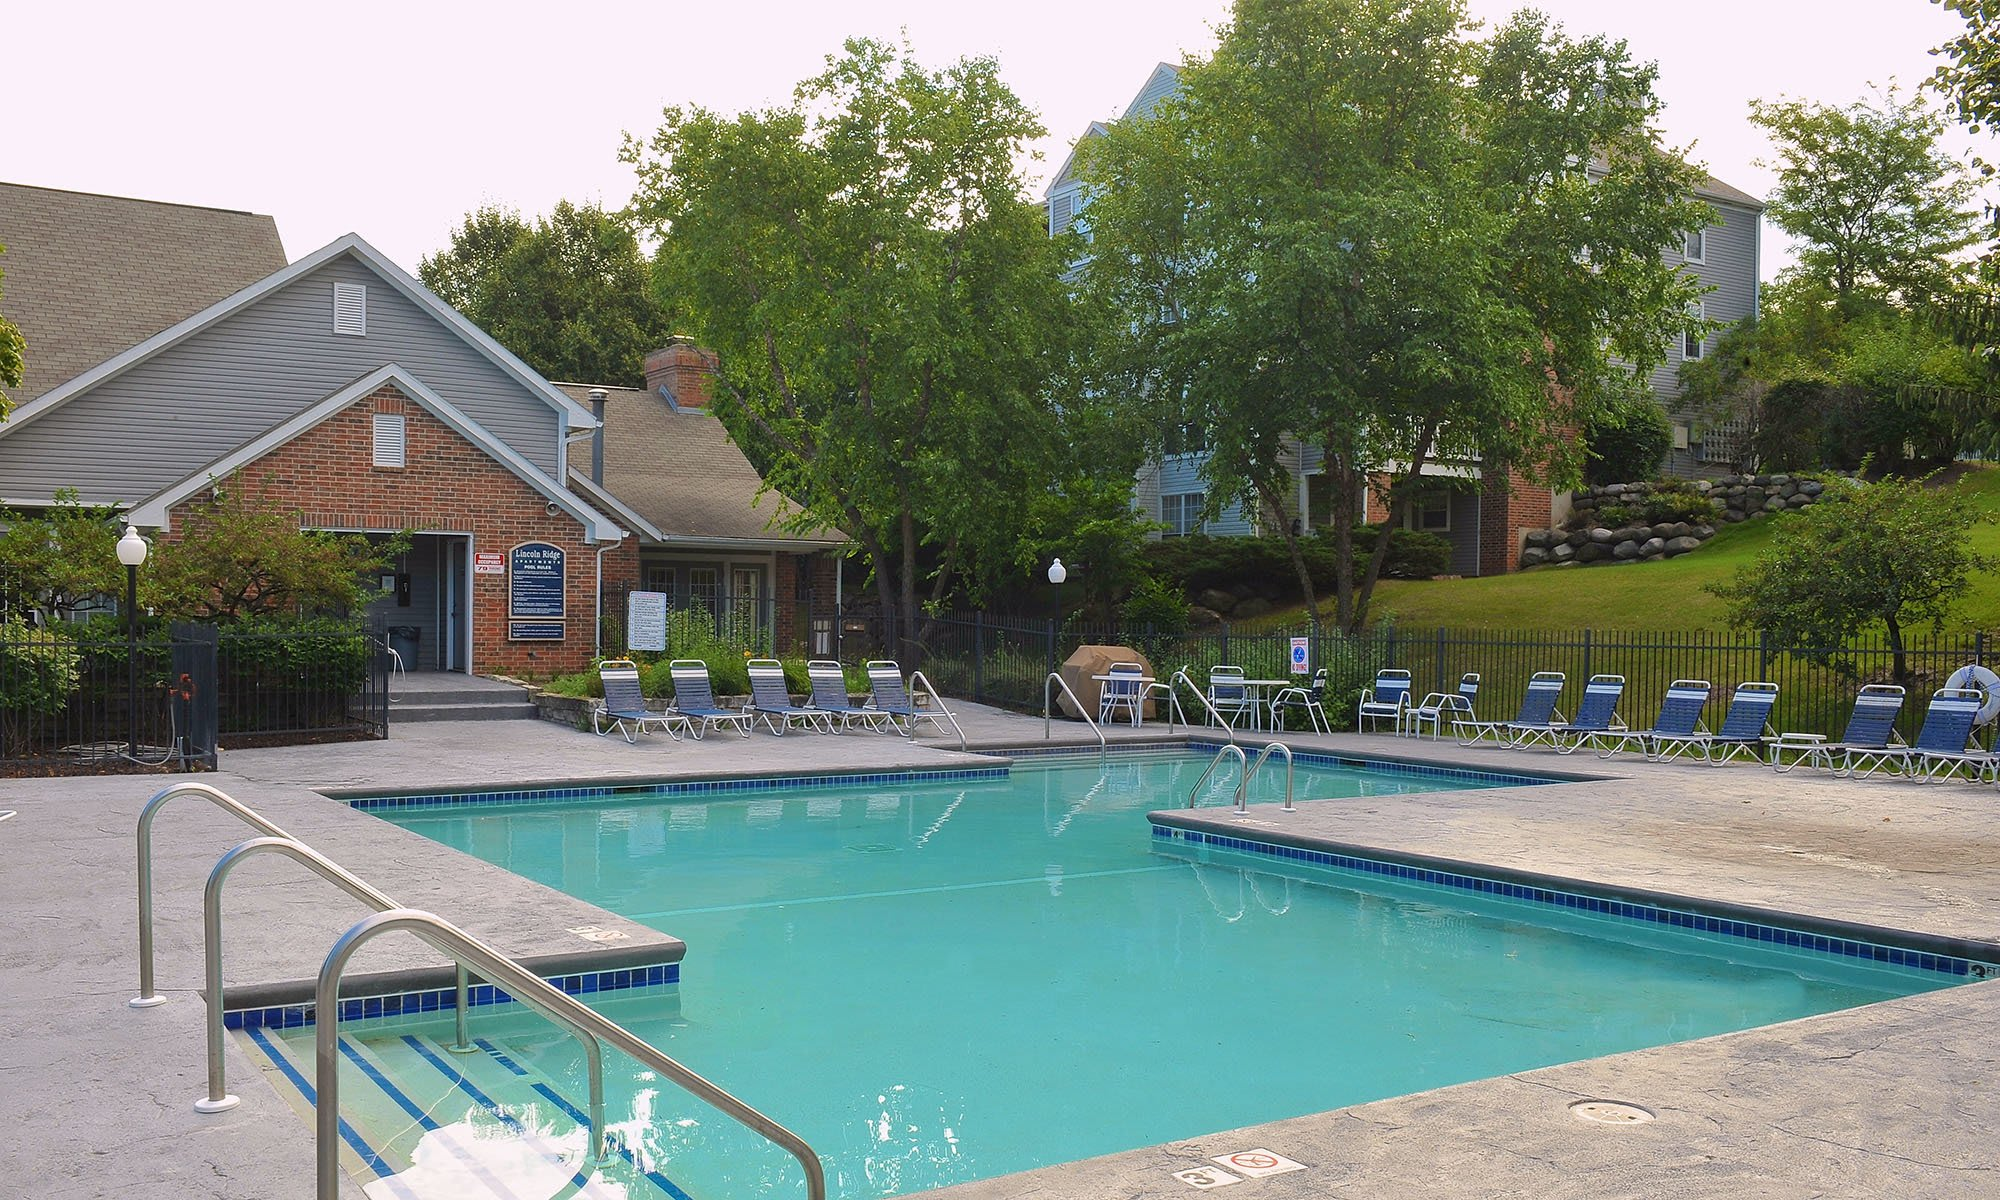 A swimming pool at a Blake Capital Corp community.